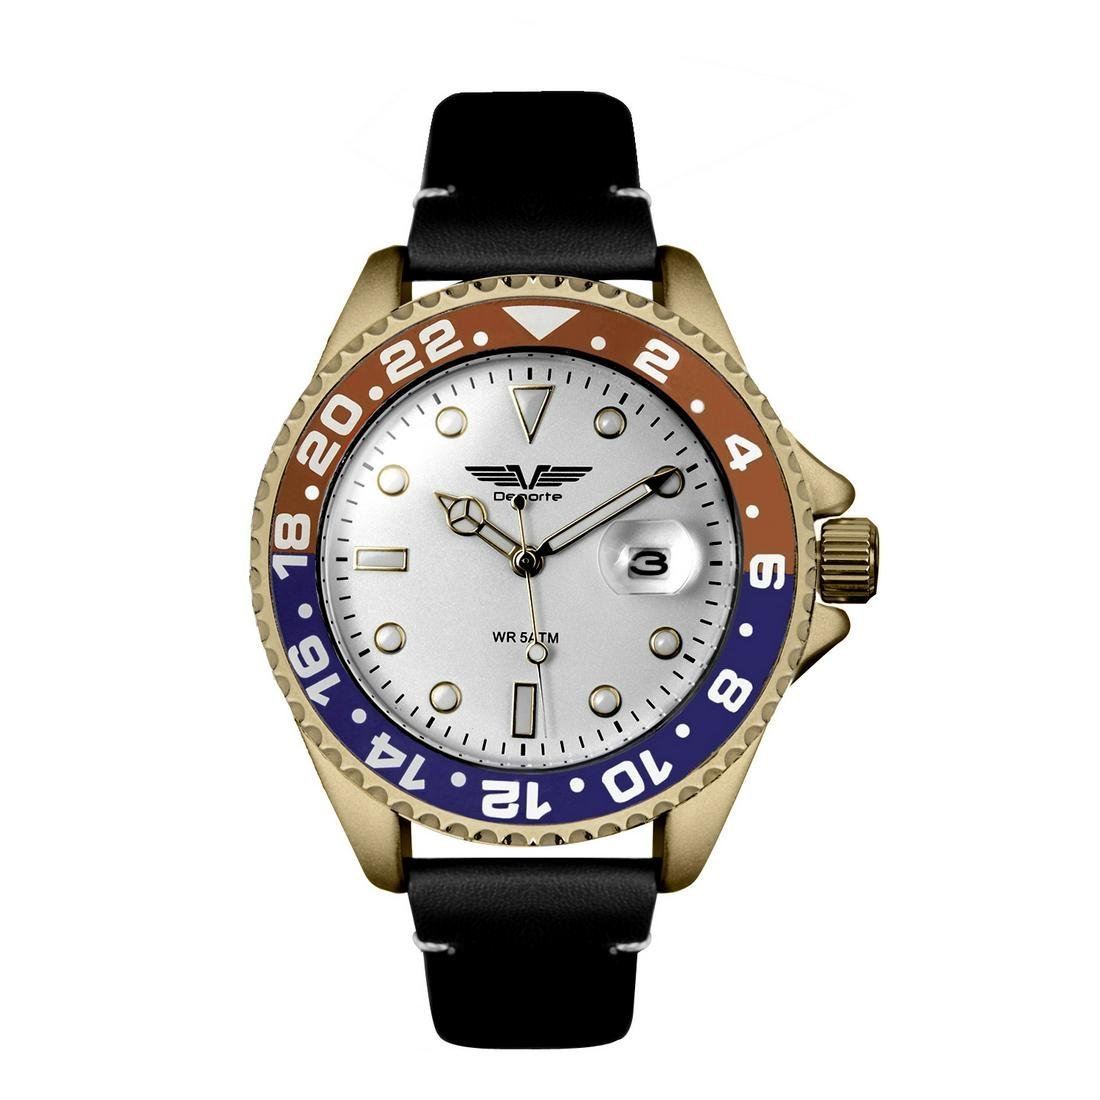 Deporte Pacific Mens Diver Style Watch with Leather